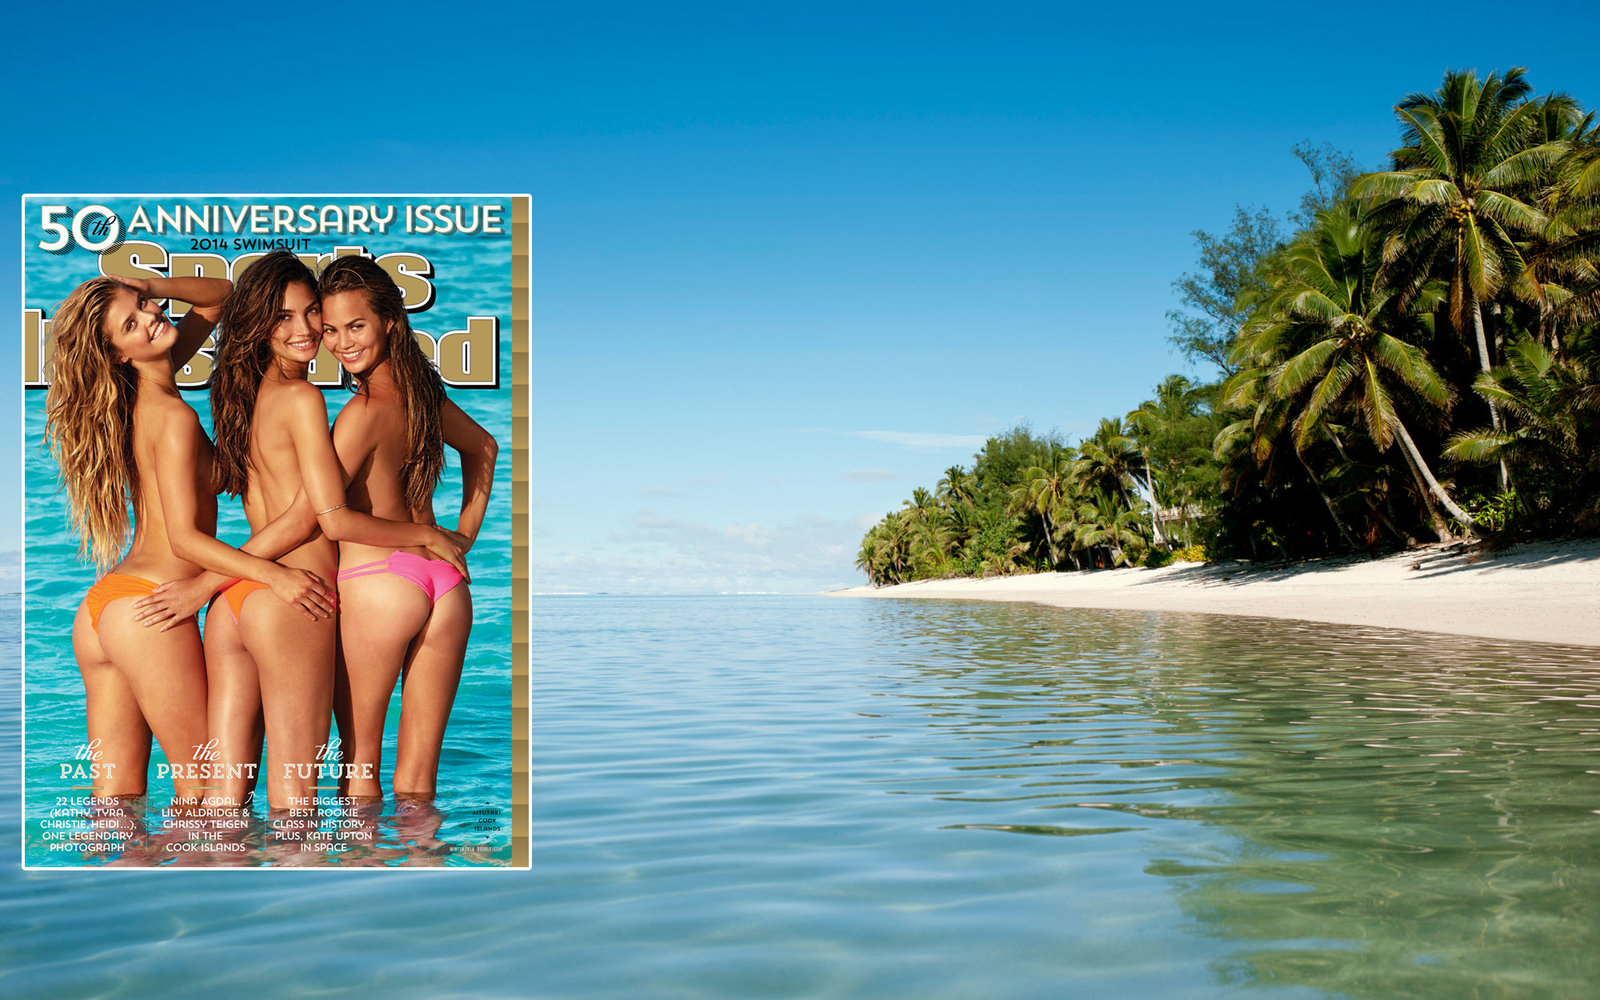 Sports Illustrated Swimsuit Issue 2014 Rarotonga Cook Islands New Zealand